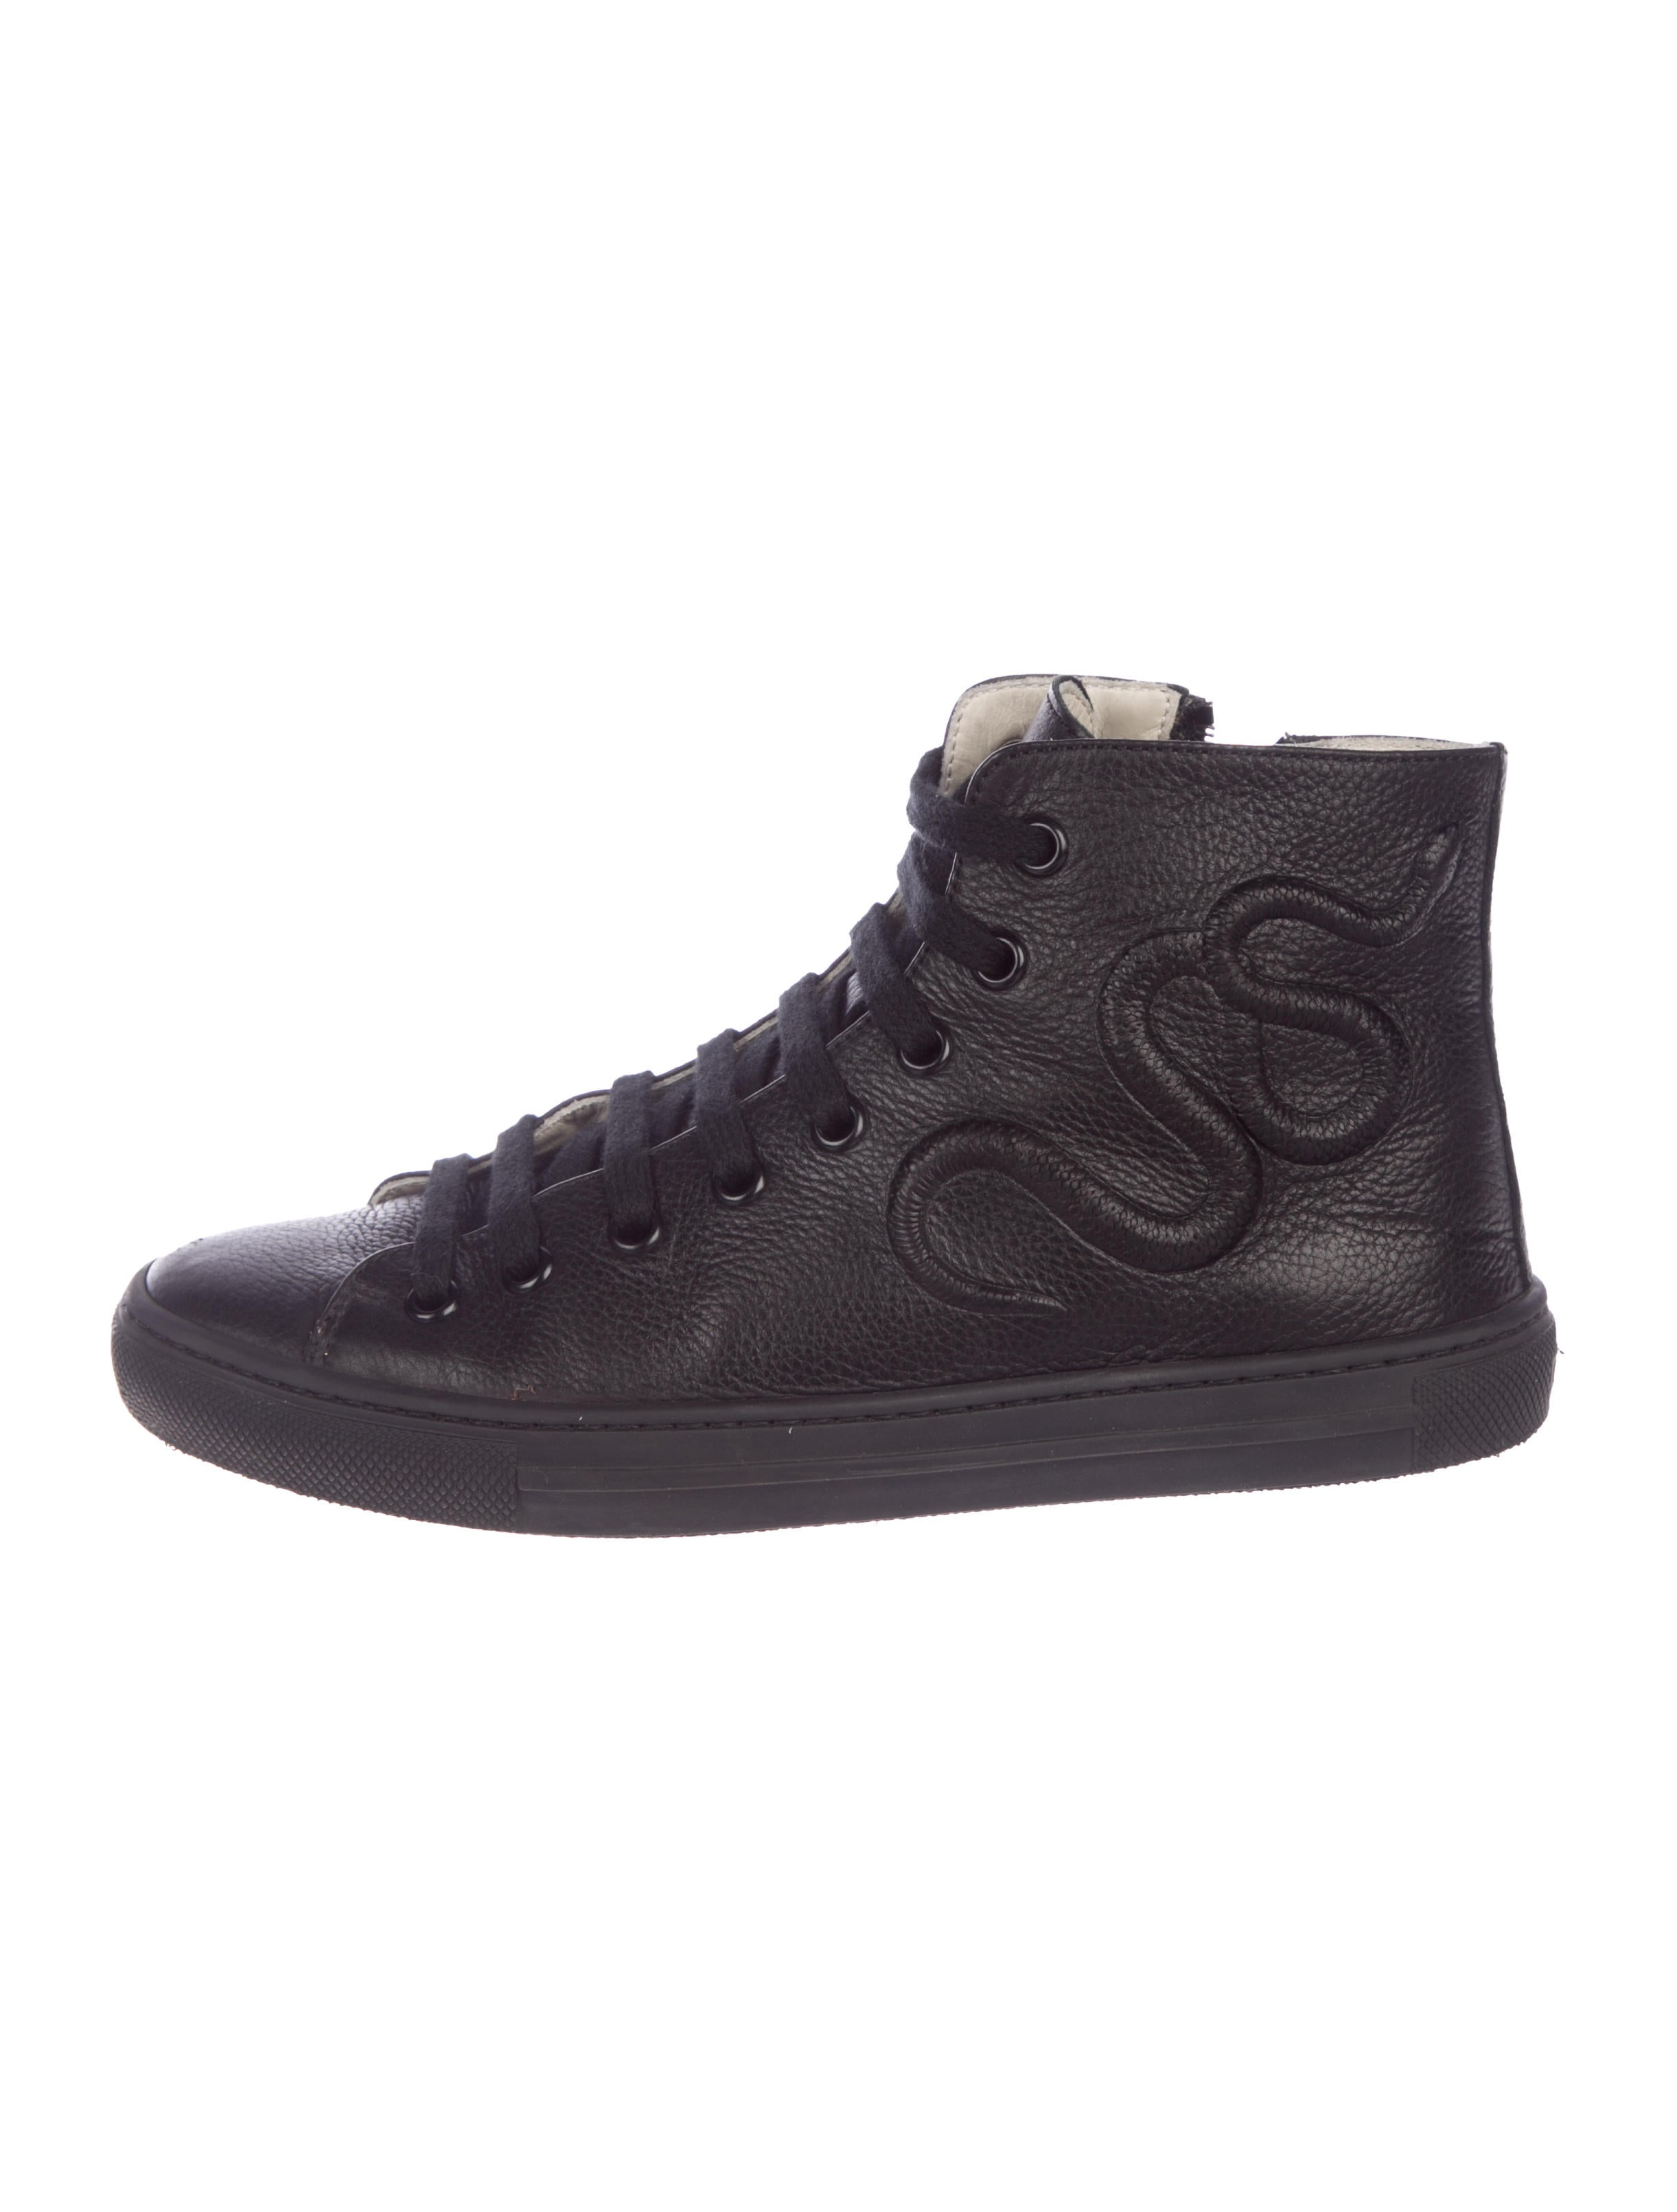 9c609a34b09 Gucci Boys  Leather High-Top Sneakers - Boys - GUC257499